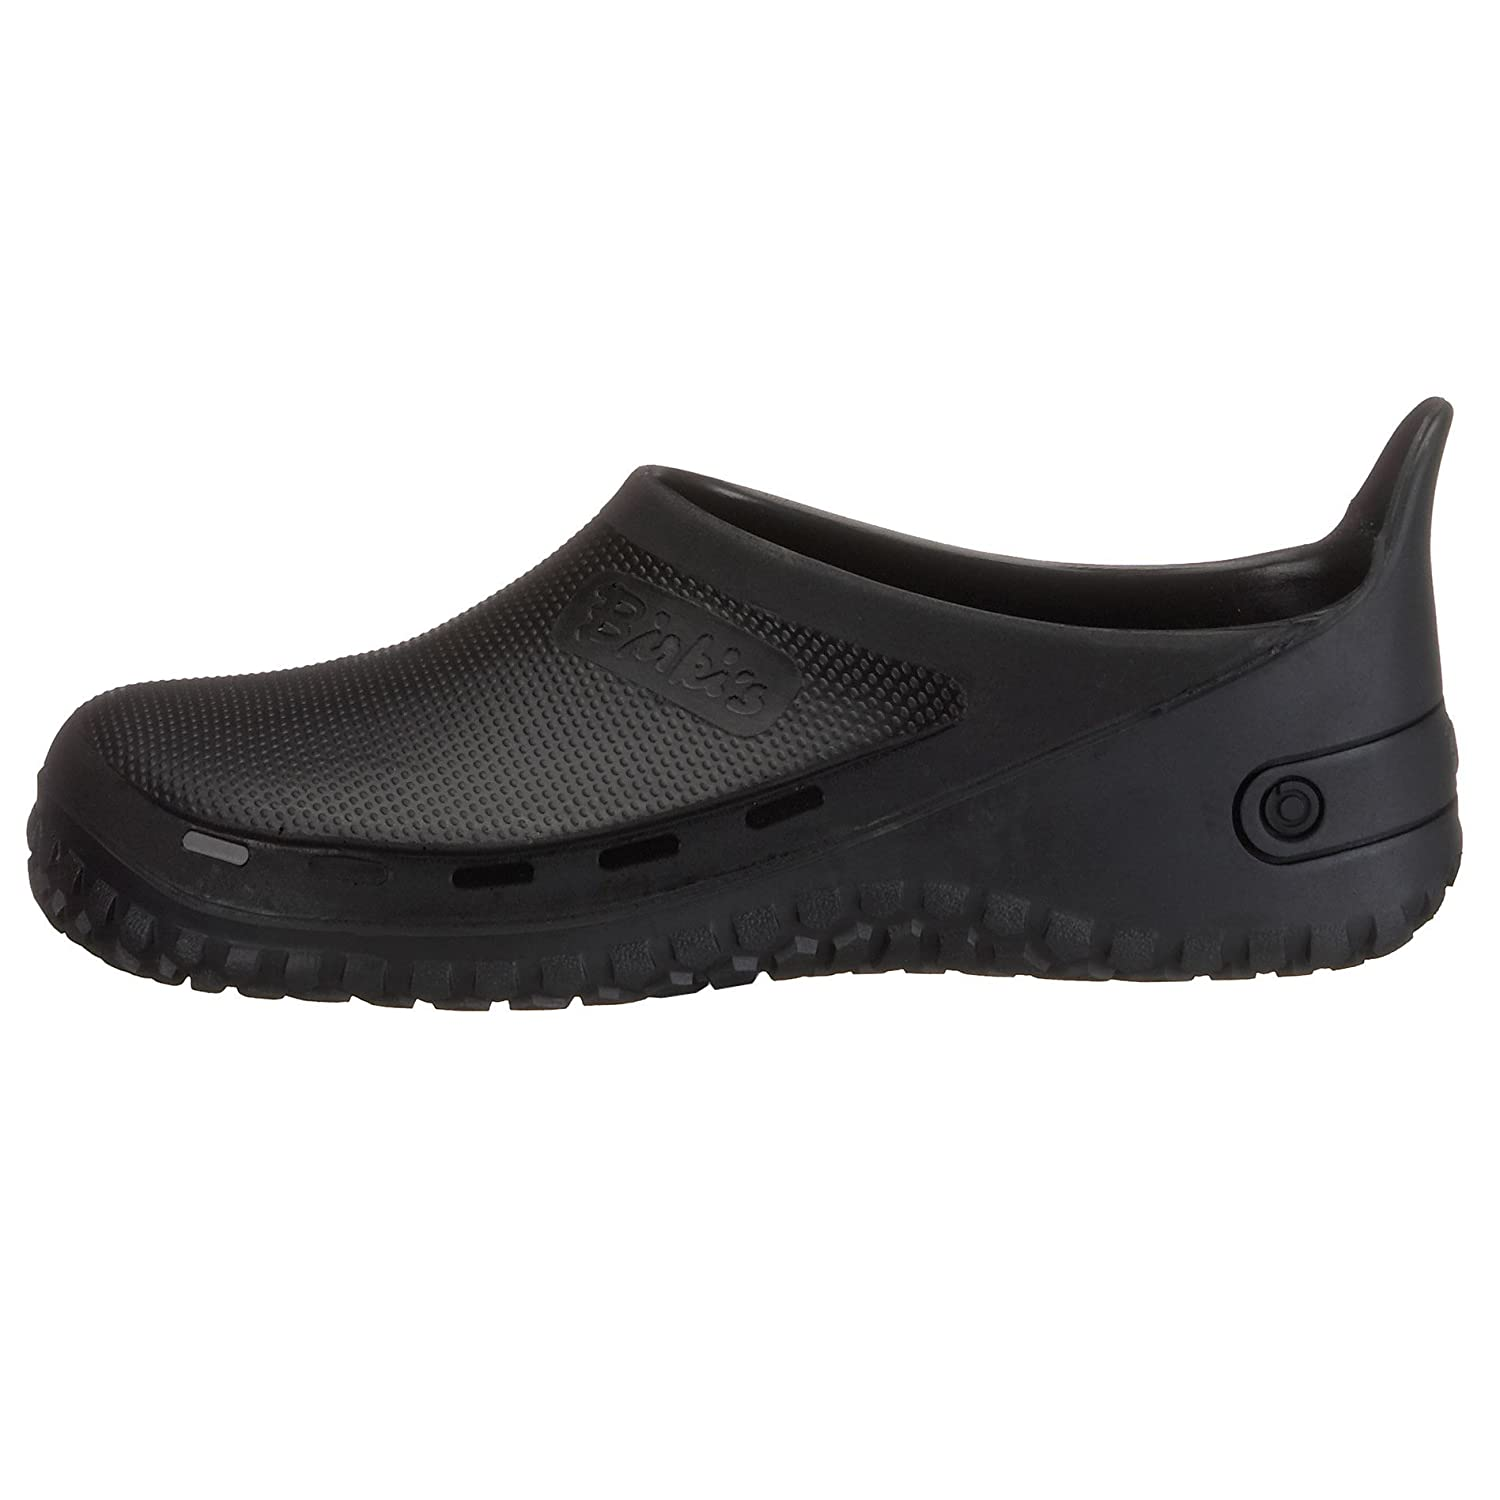 Birkenstock clogs Active-Birki in size 36.0 N EU made of Alpro-Foam in Black with a narrow insole